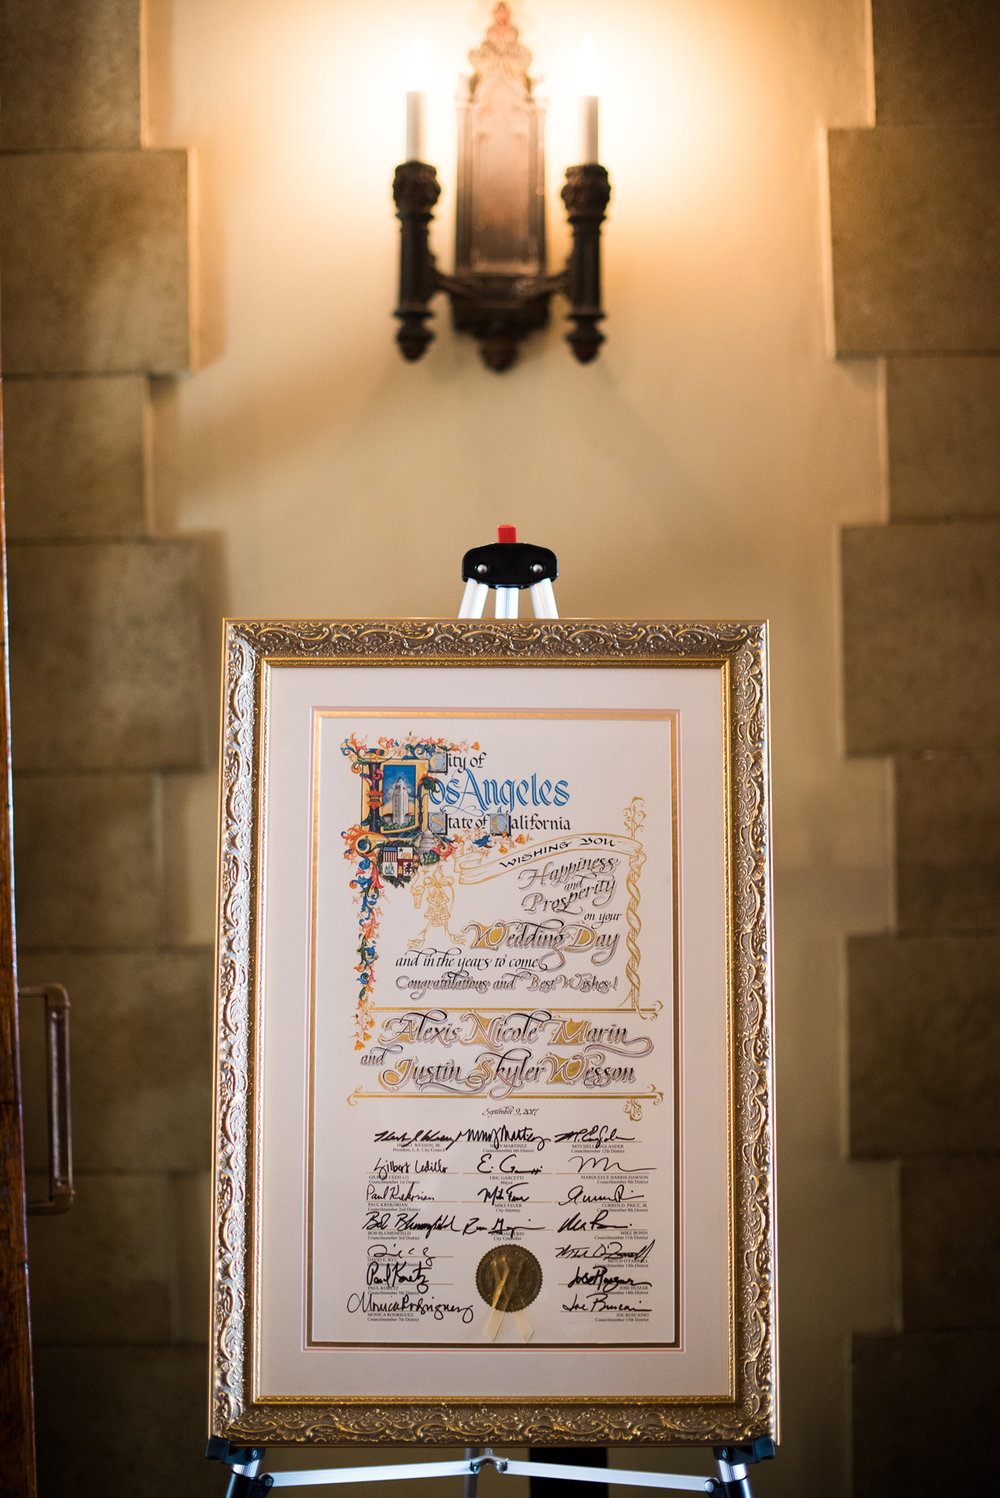 Dreamy Romantic Wedding at Historic Los Angeles Ebell Club wedding proclamation from city of los angeles.jpg